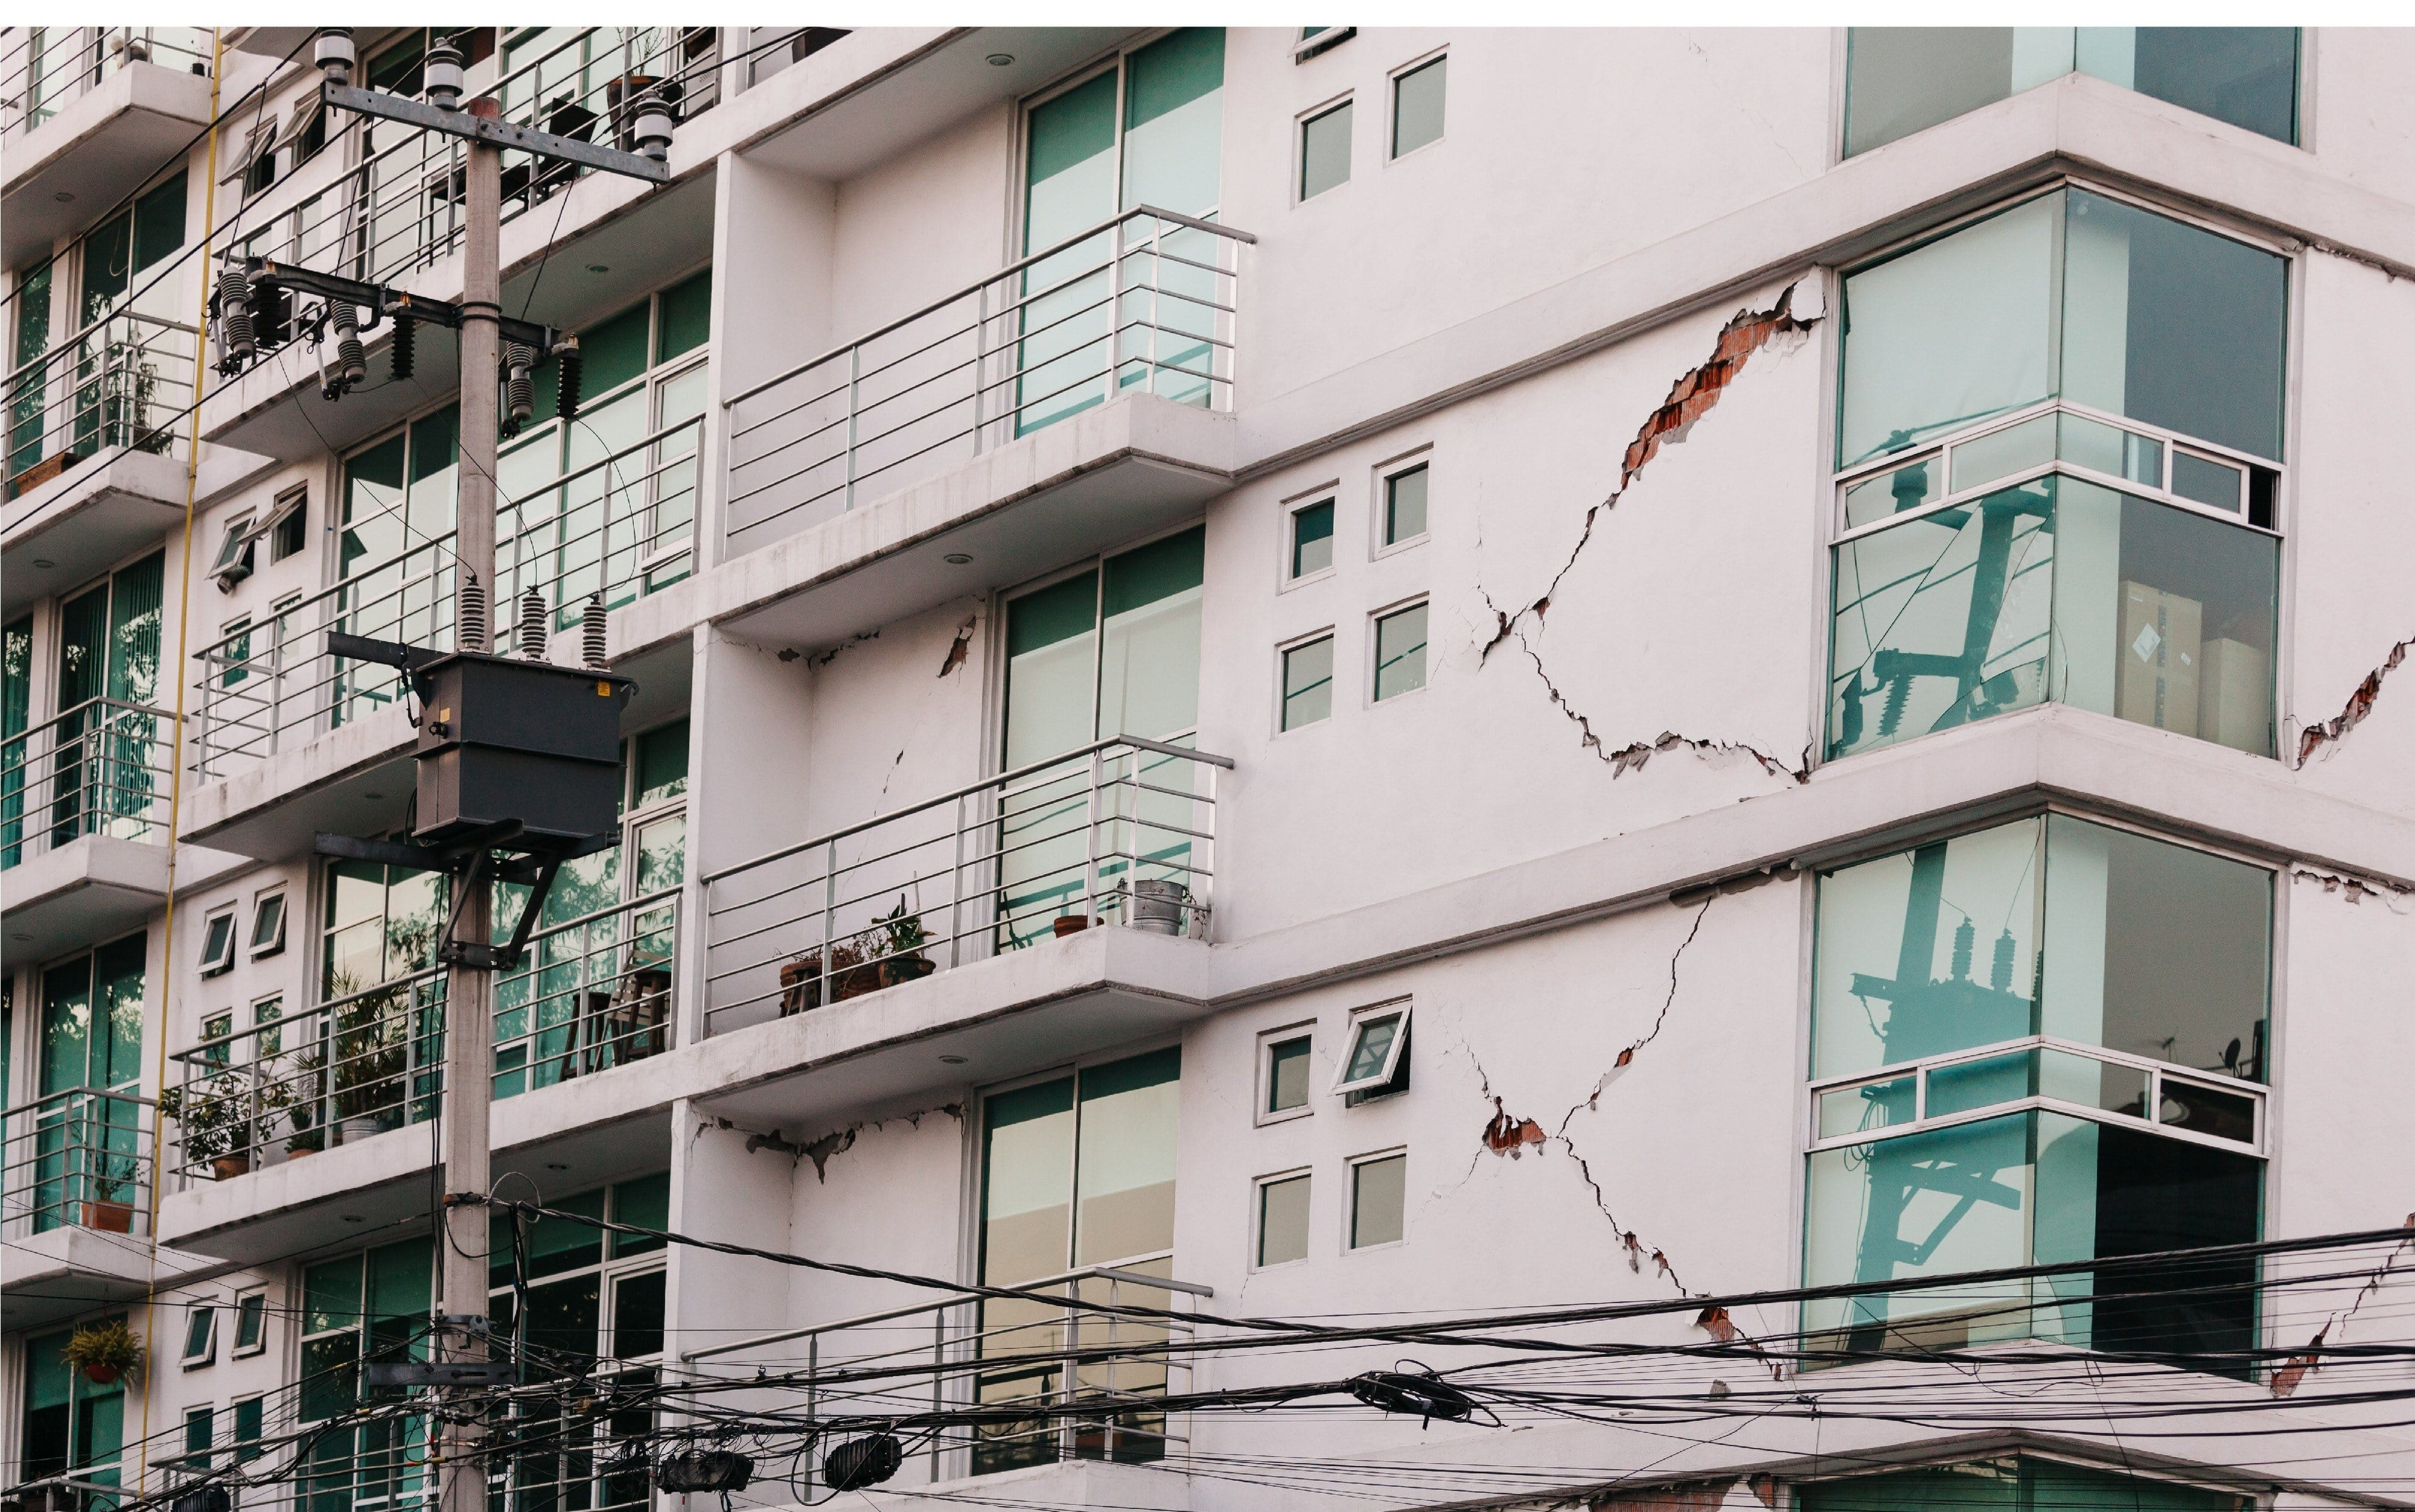 Earthquake damage to Condos are a serious threat